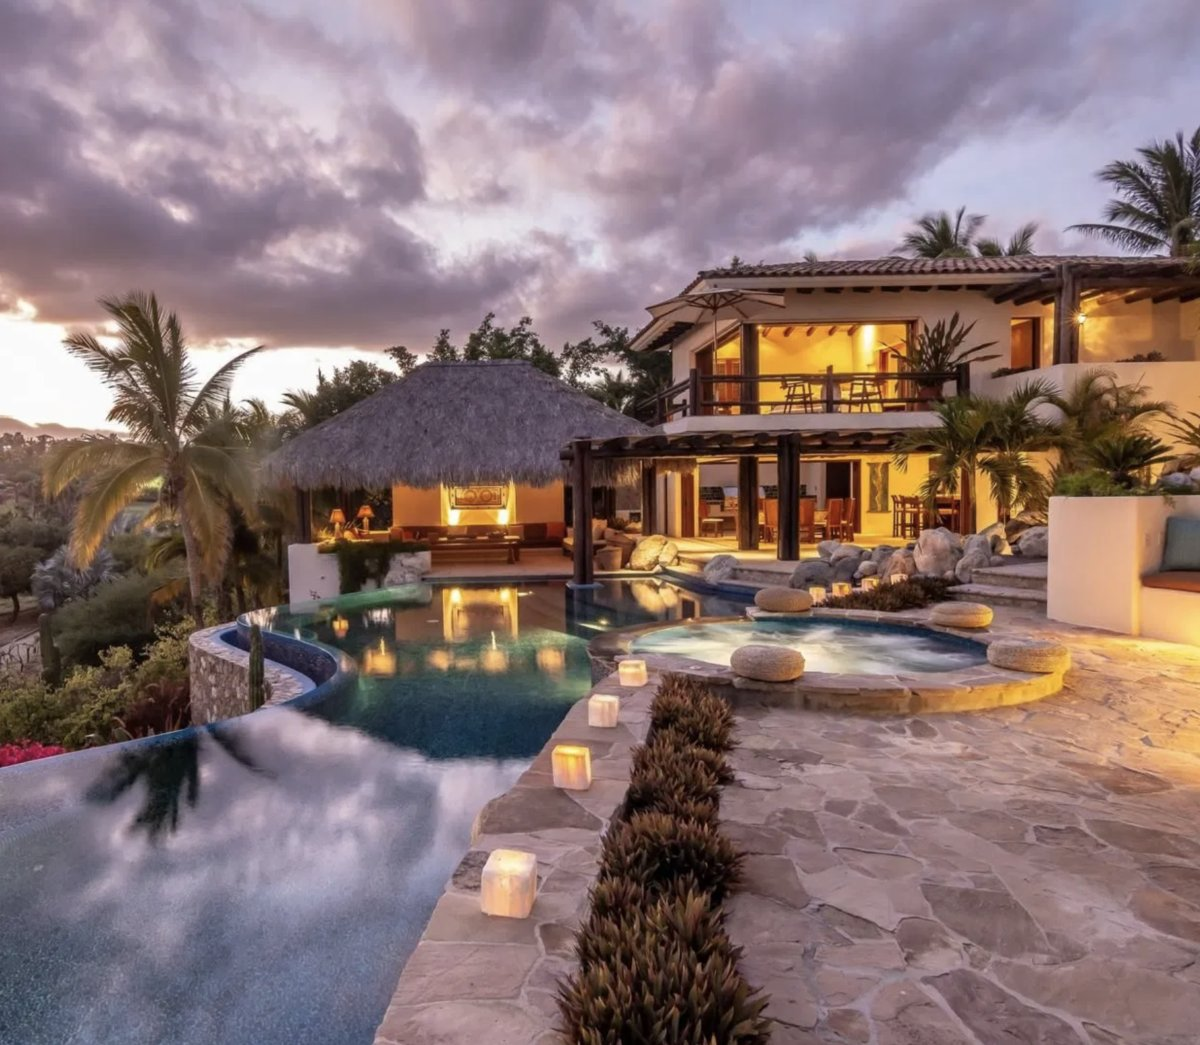 Kocomo raises millions to give people a way to co-own a luxury vacation home